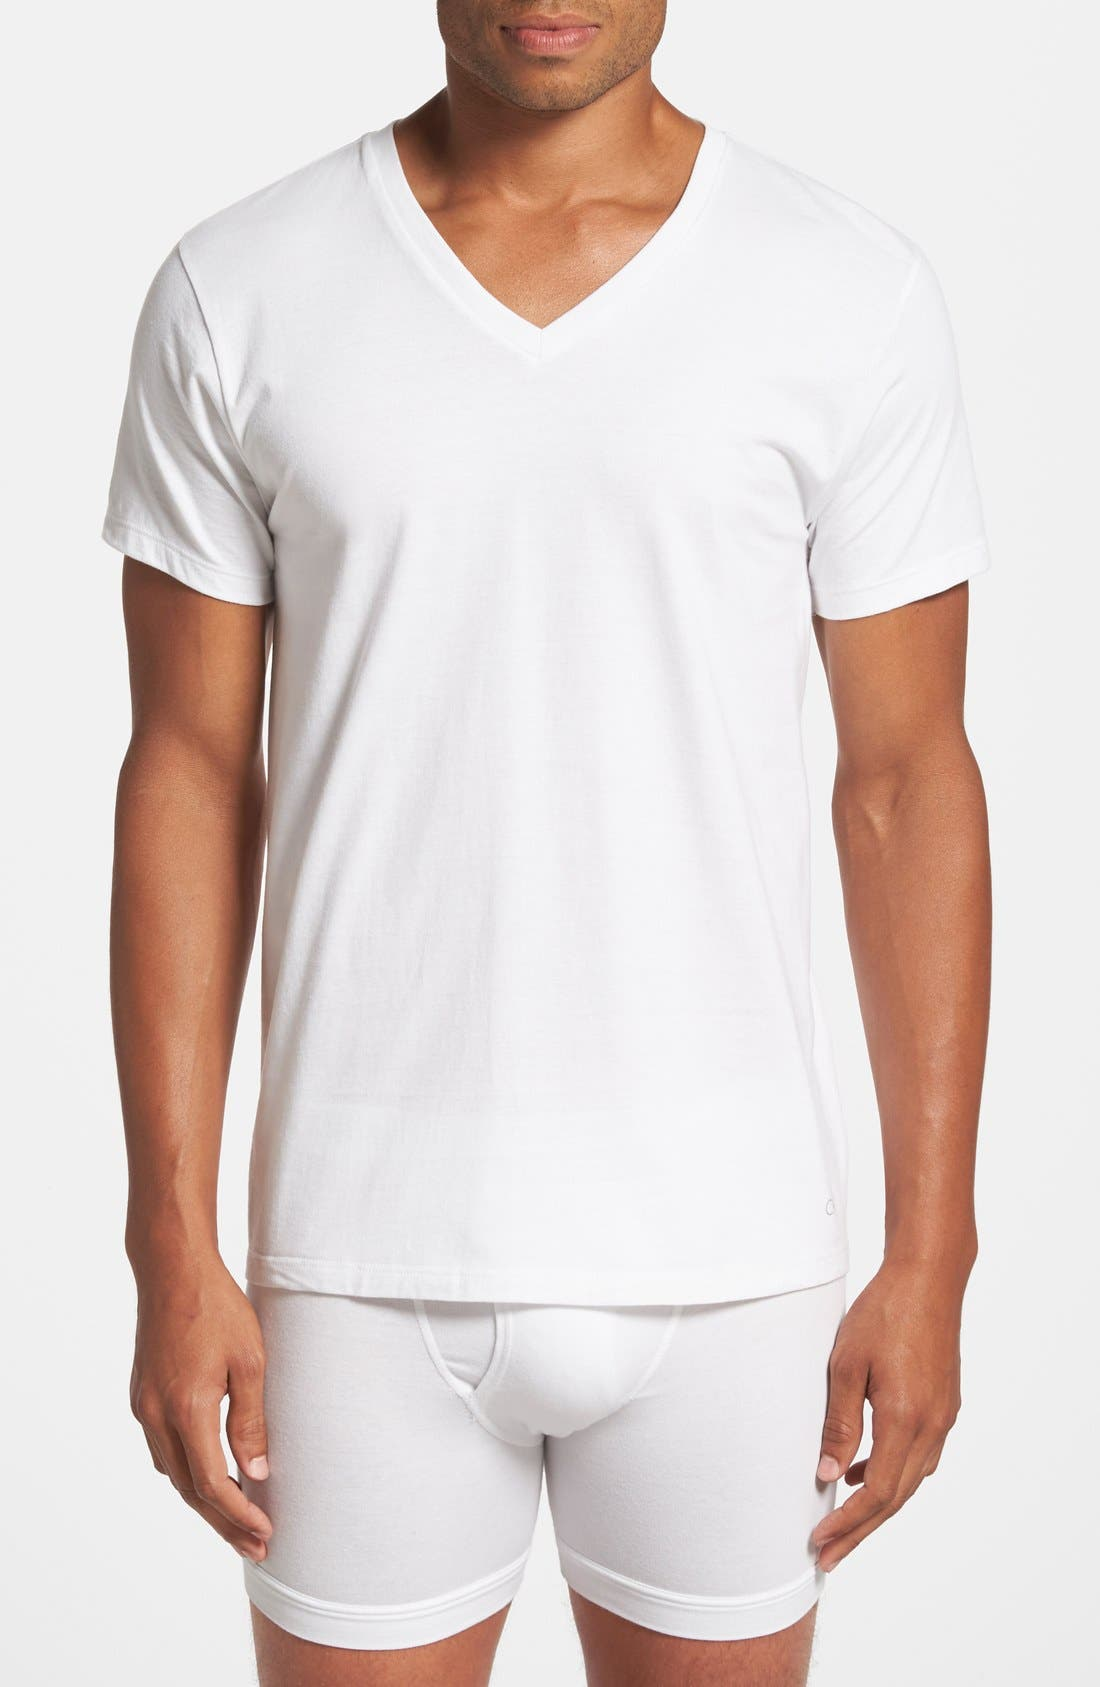 CALVIN KLEIN, 3-Pack Classic Fit T-Shirt, Main thumbnail 1, color, WHITE